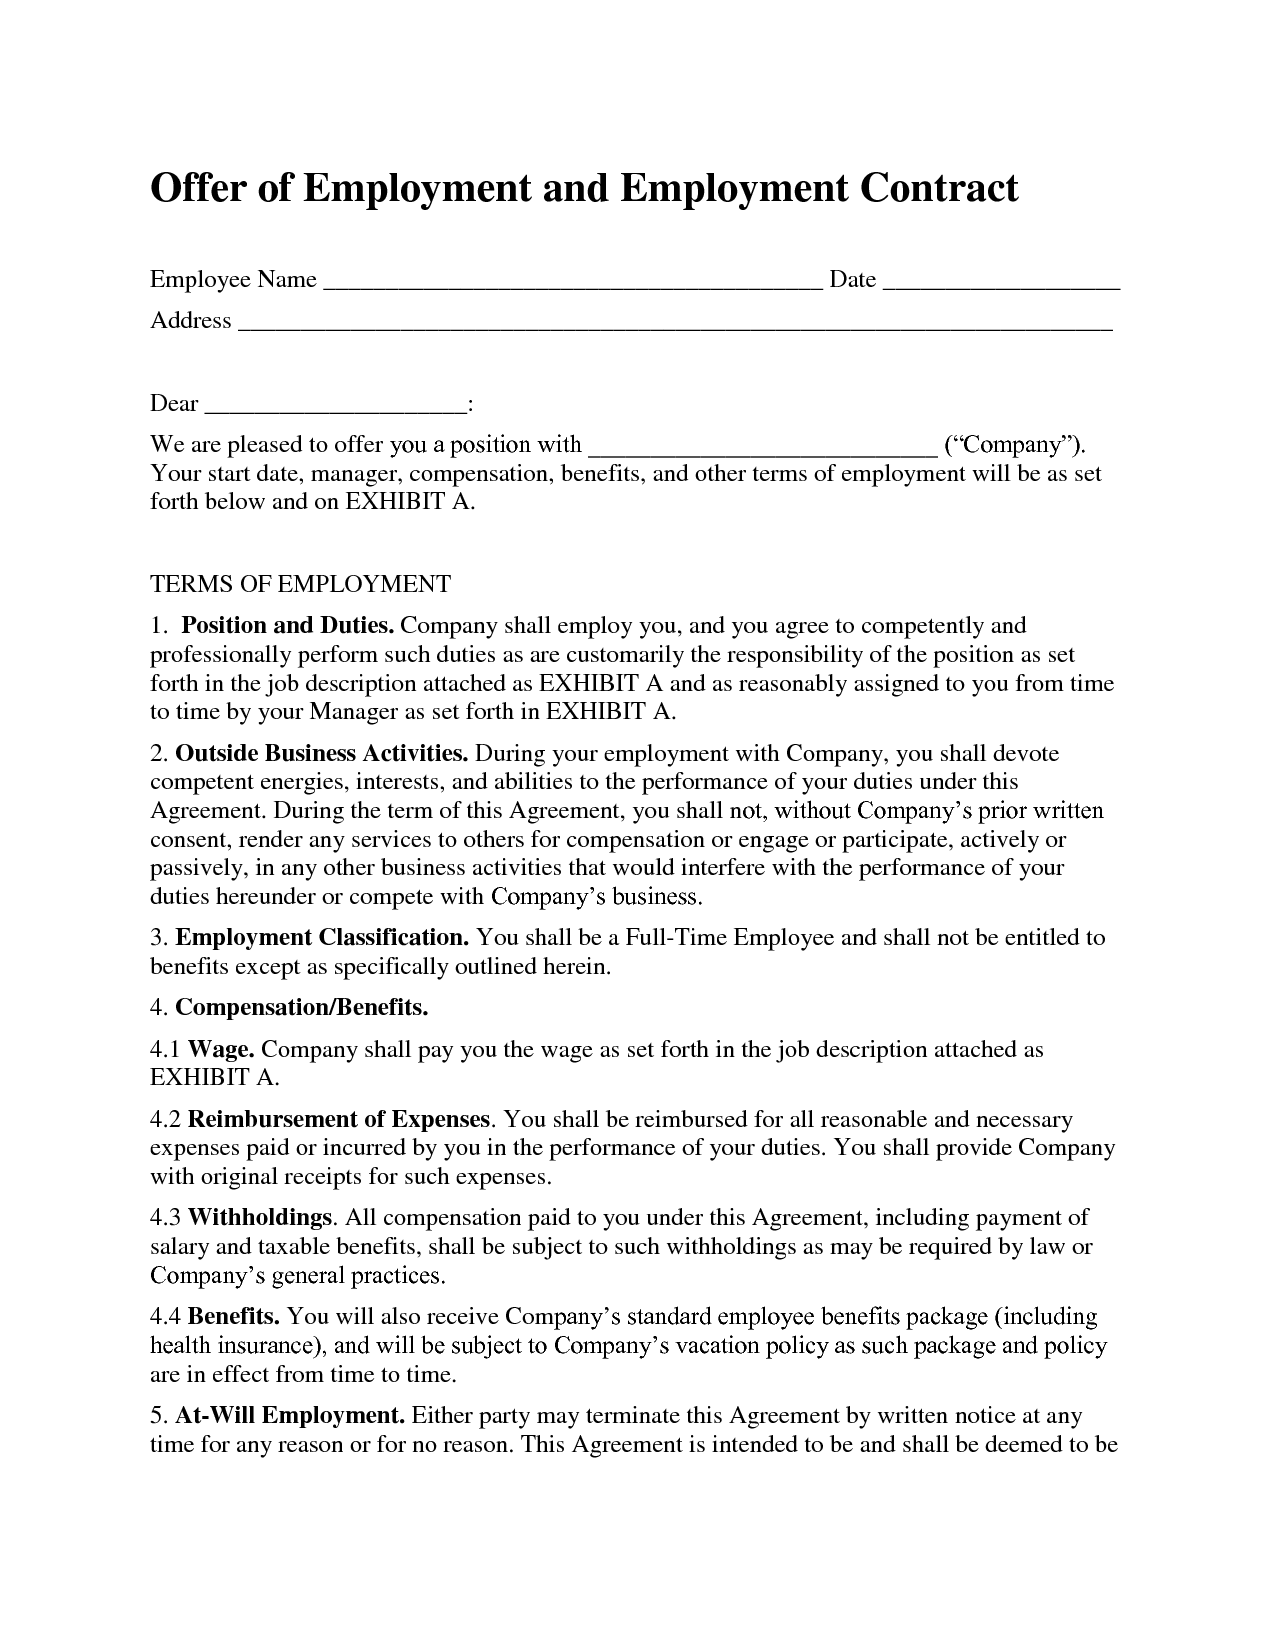 Employment Contract Template | bravebtr